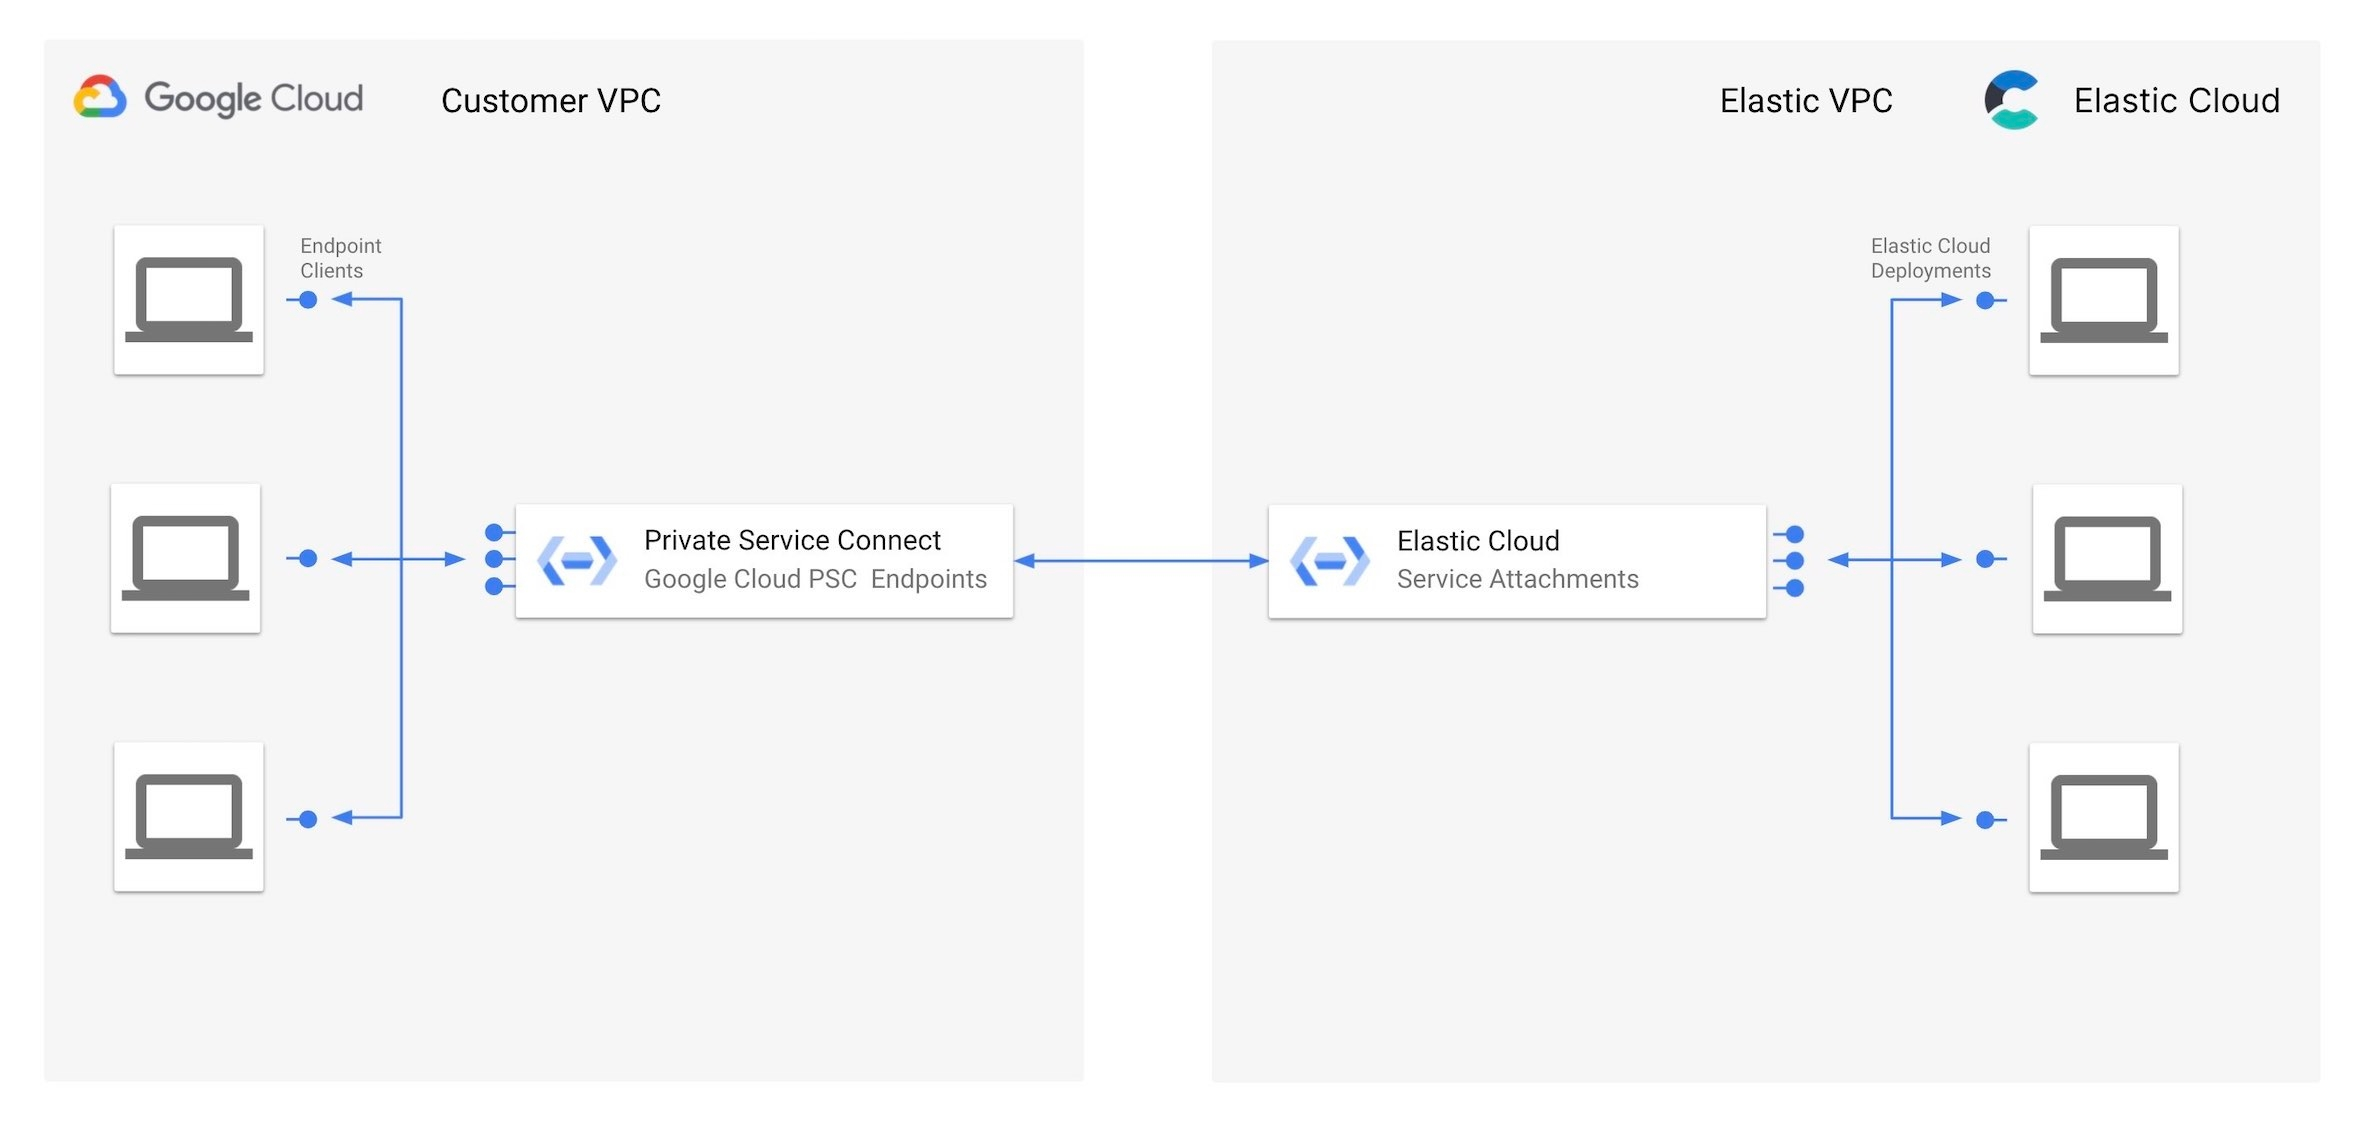 Google Private Service Connect provides easy and private access to Elastic Cloud deployment endpoints while keeping all traffic within the Google network